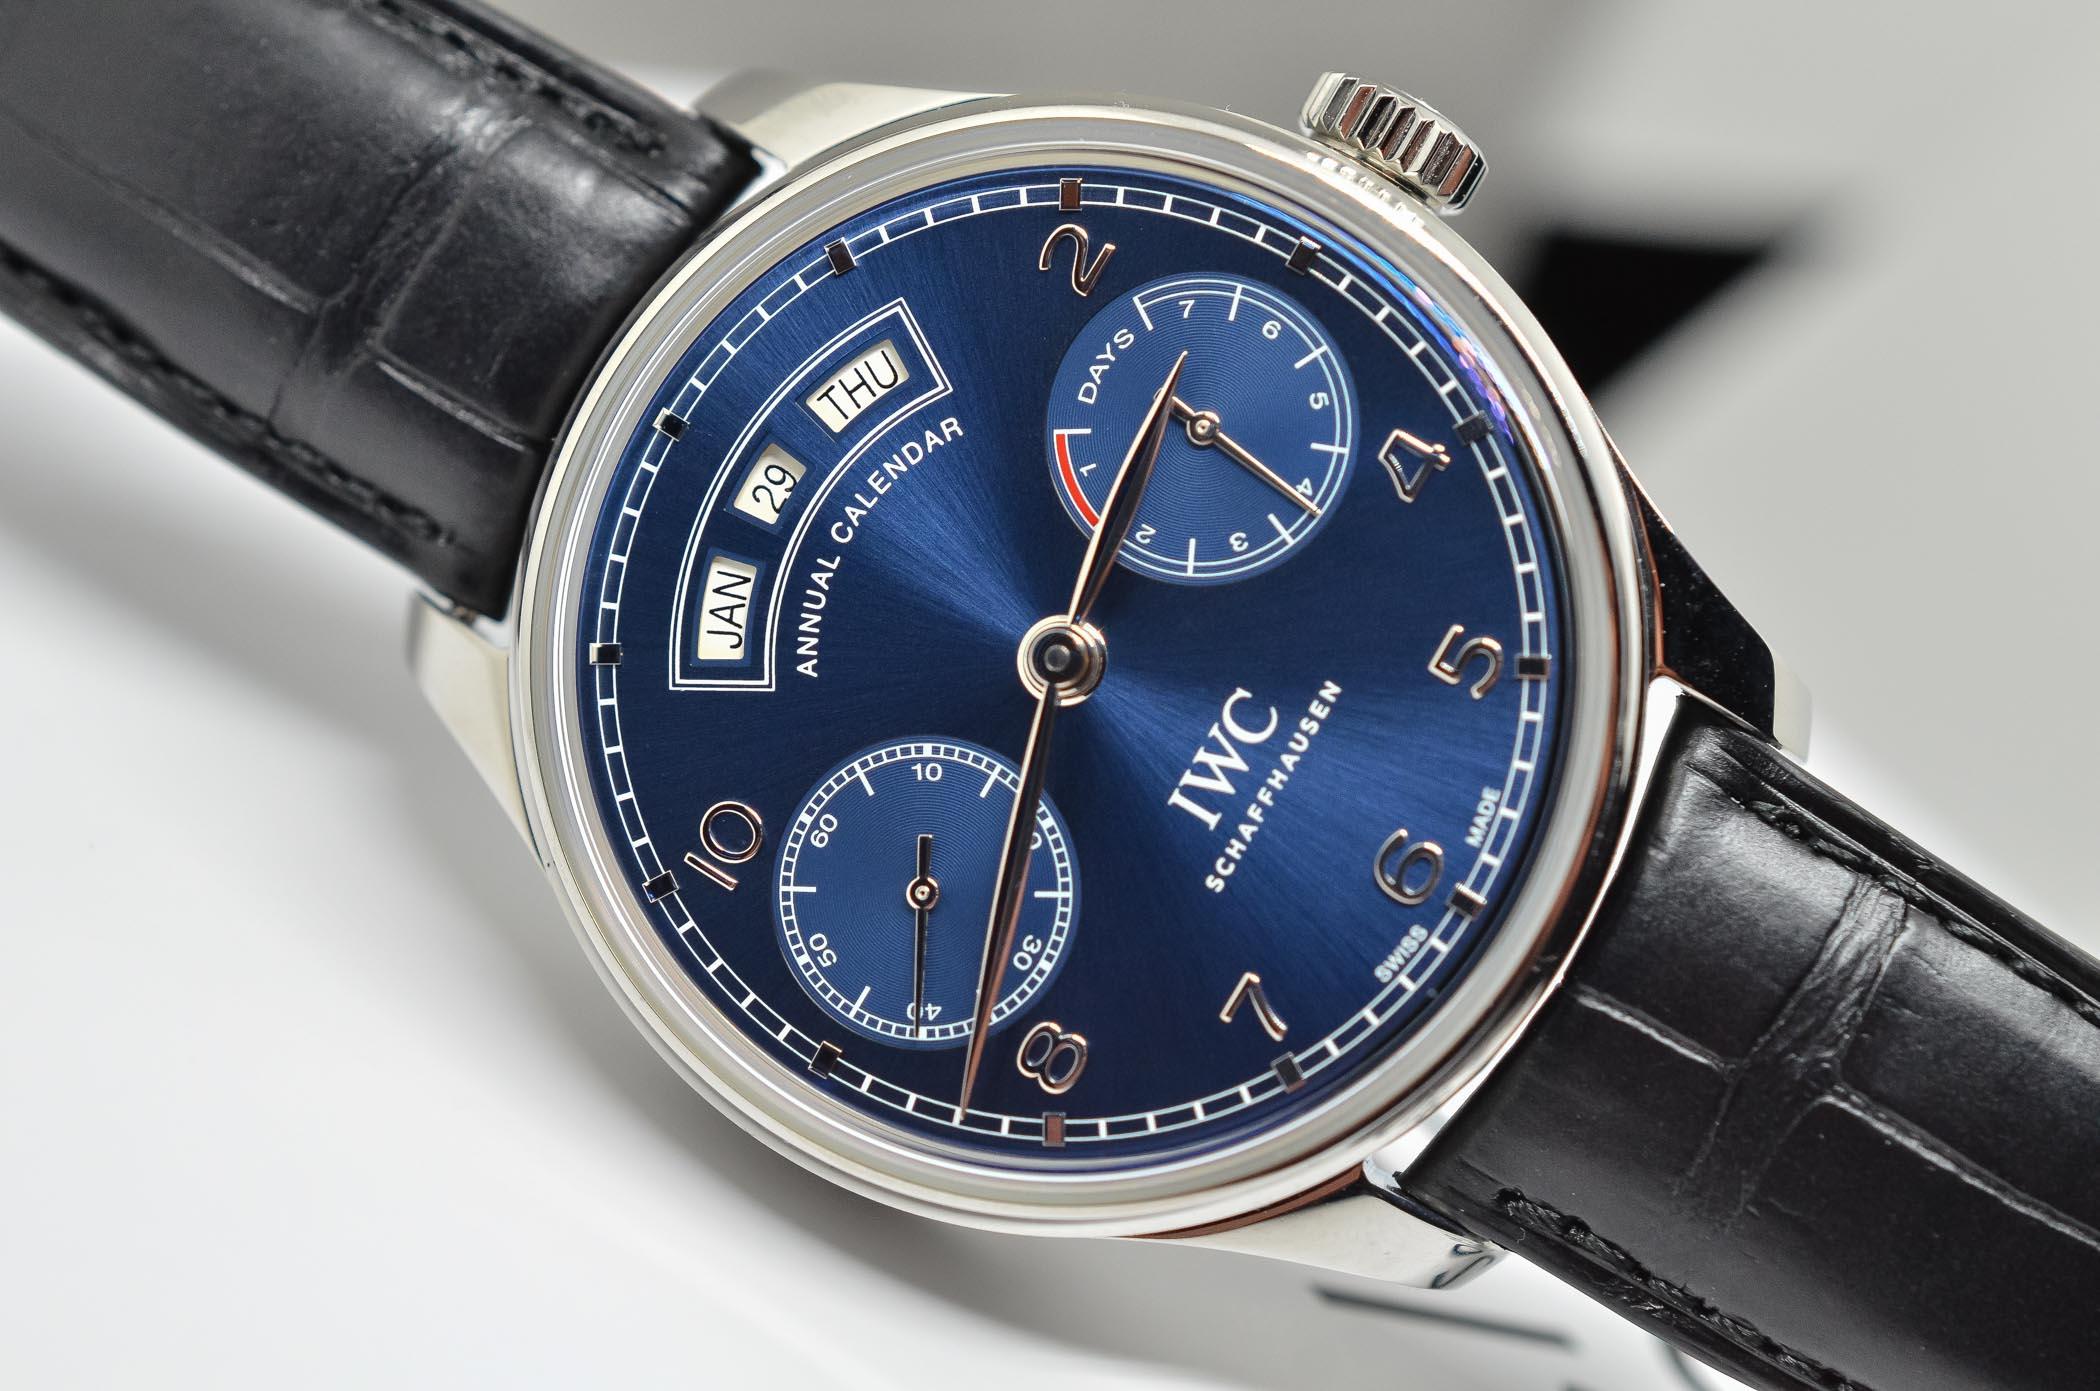 Buying Guide 2017 Annual Calendar Watches - IWC Portugieser Annual Calendar